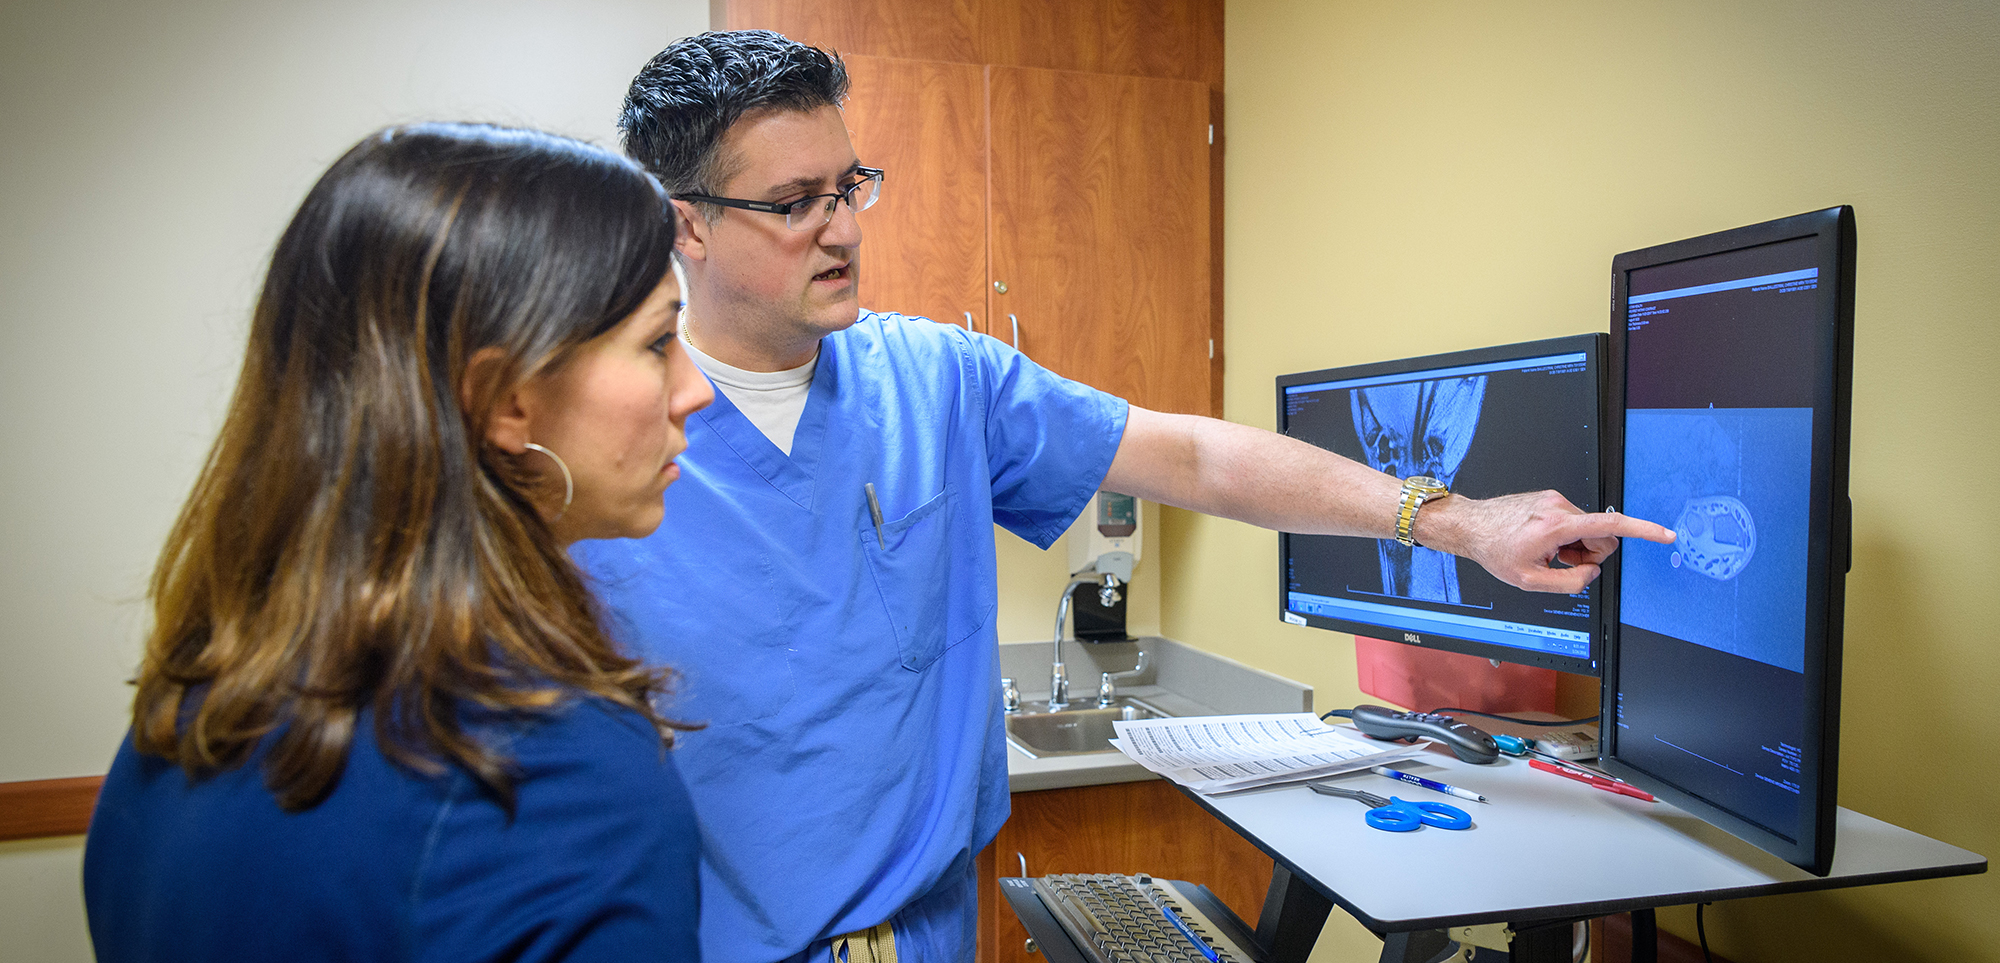 Dr. Joel Ferreira looking at an MRI with a patient